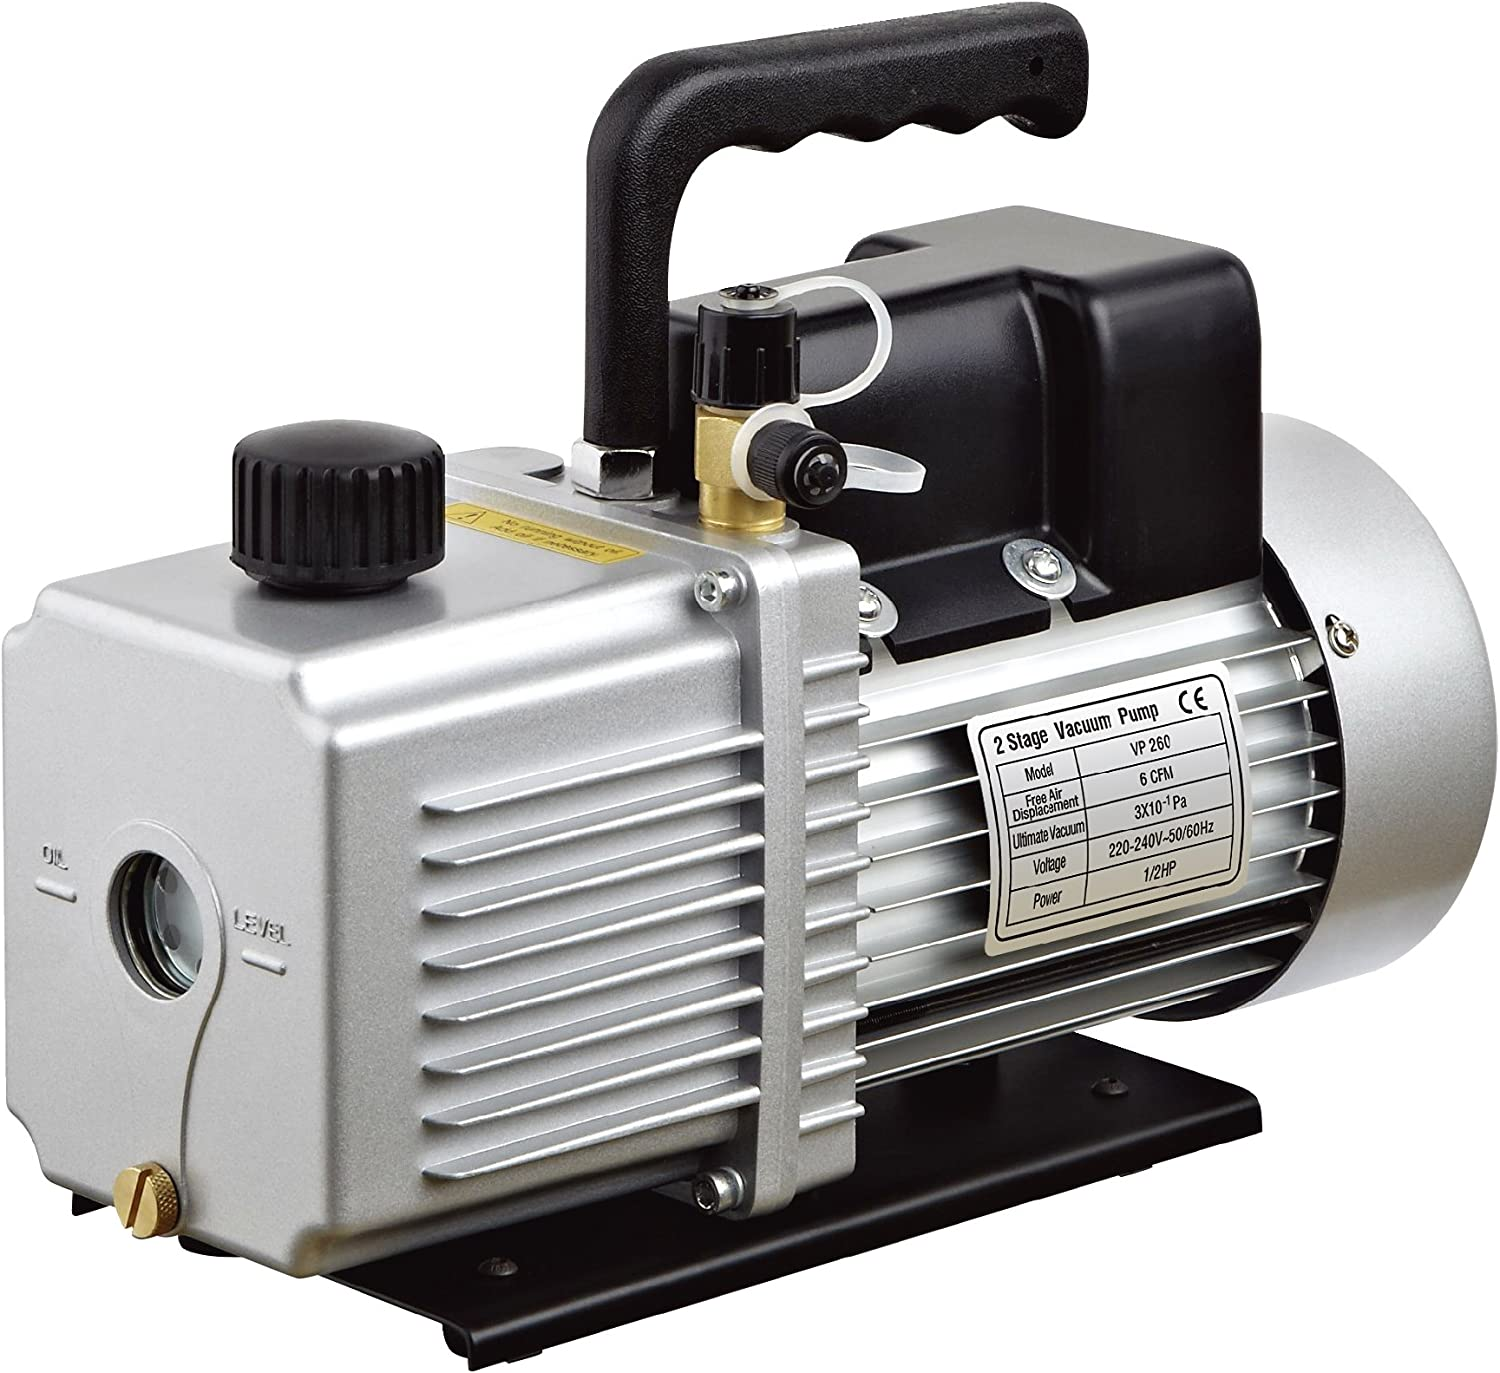 "HFS (R Vacuum Pump Single Stage 12CFM ; 110V/60HZ ; Inlet: SAE 1/4""-3/8"" SAE; Ultimate Vacuum: 3PA/22.5micron, 1HP"